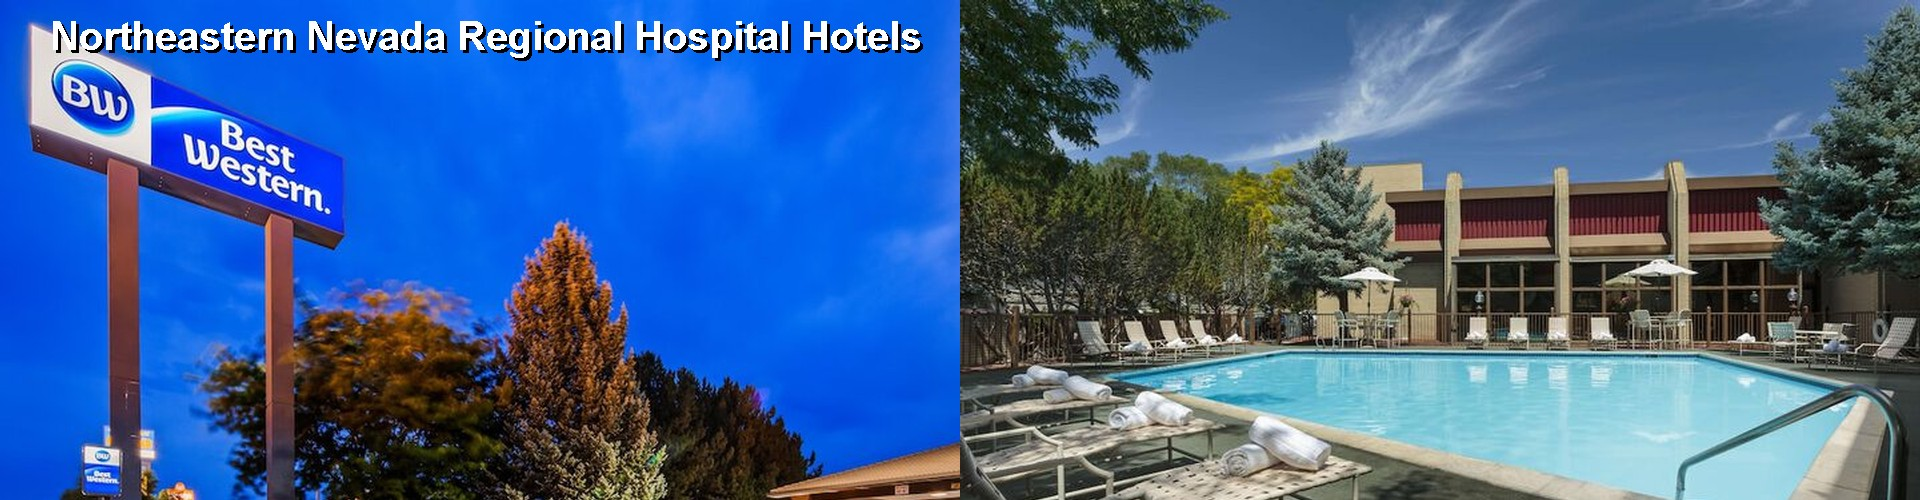 FINEST Hotels Near Northeastern Nevada Regional Hospital in Elko NV